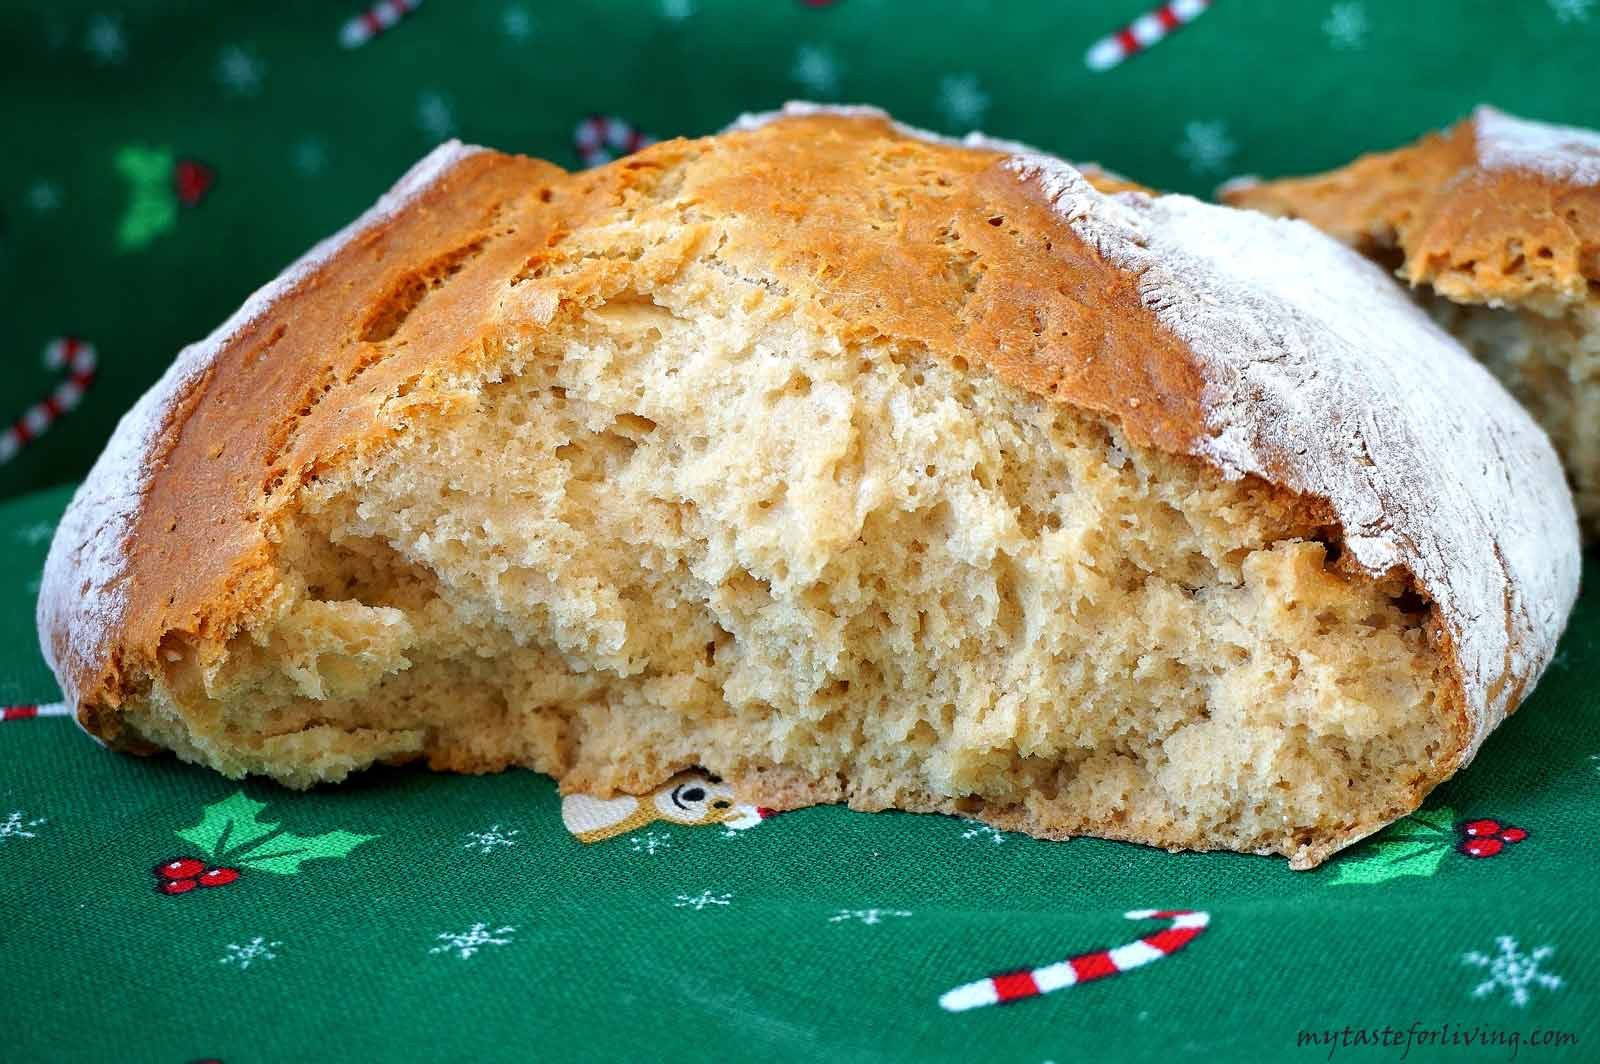 The recipe for this soda bread with spelt flour is one of my favorites! In addition to serving it on Christmas Eve, you can prepare it at any time for your loved ones instead of plain bread.